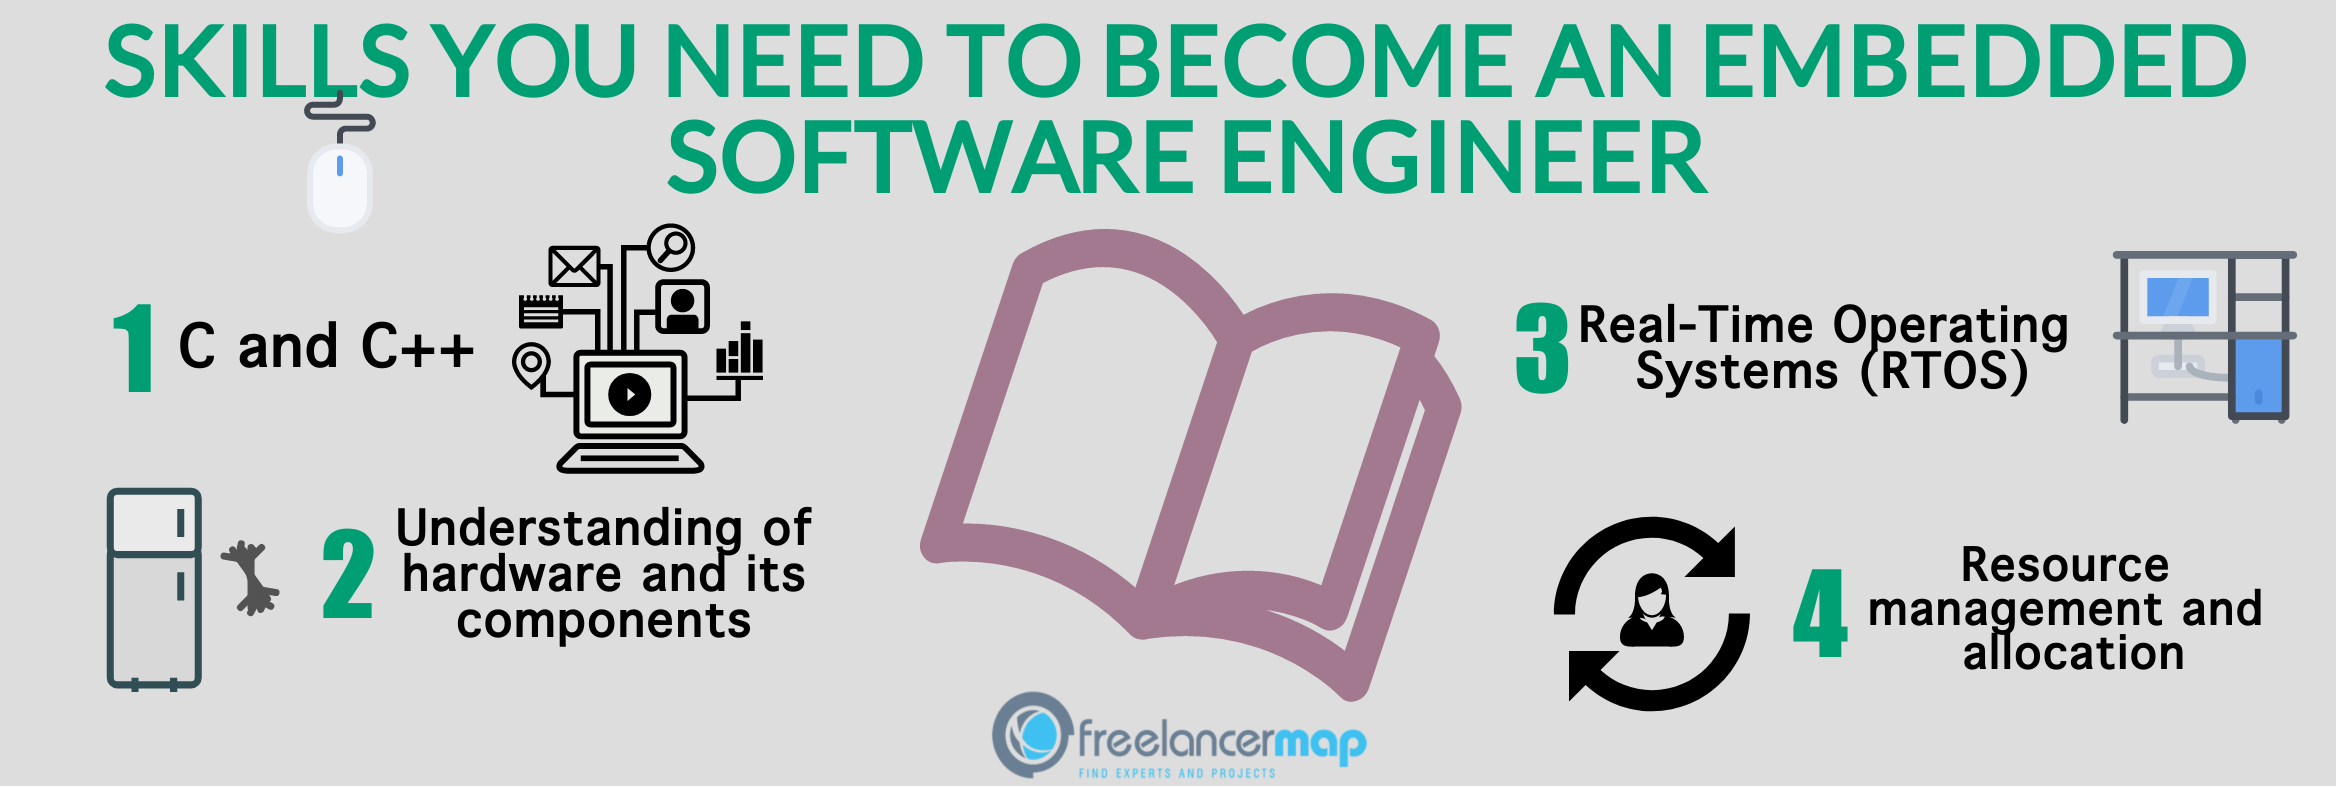 What Does An Embedded Software Engineer Do Career Insights